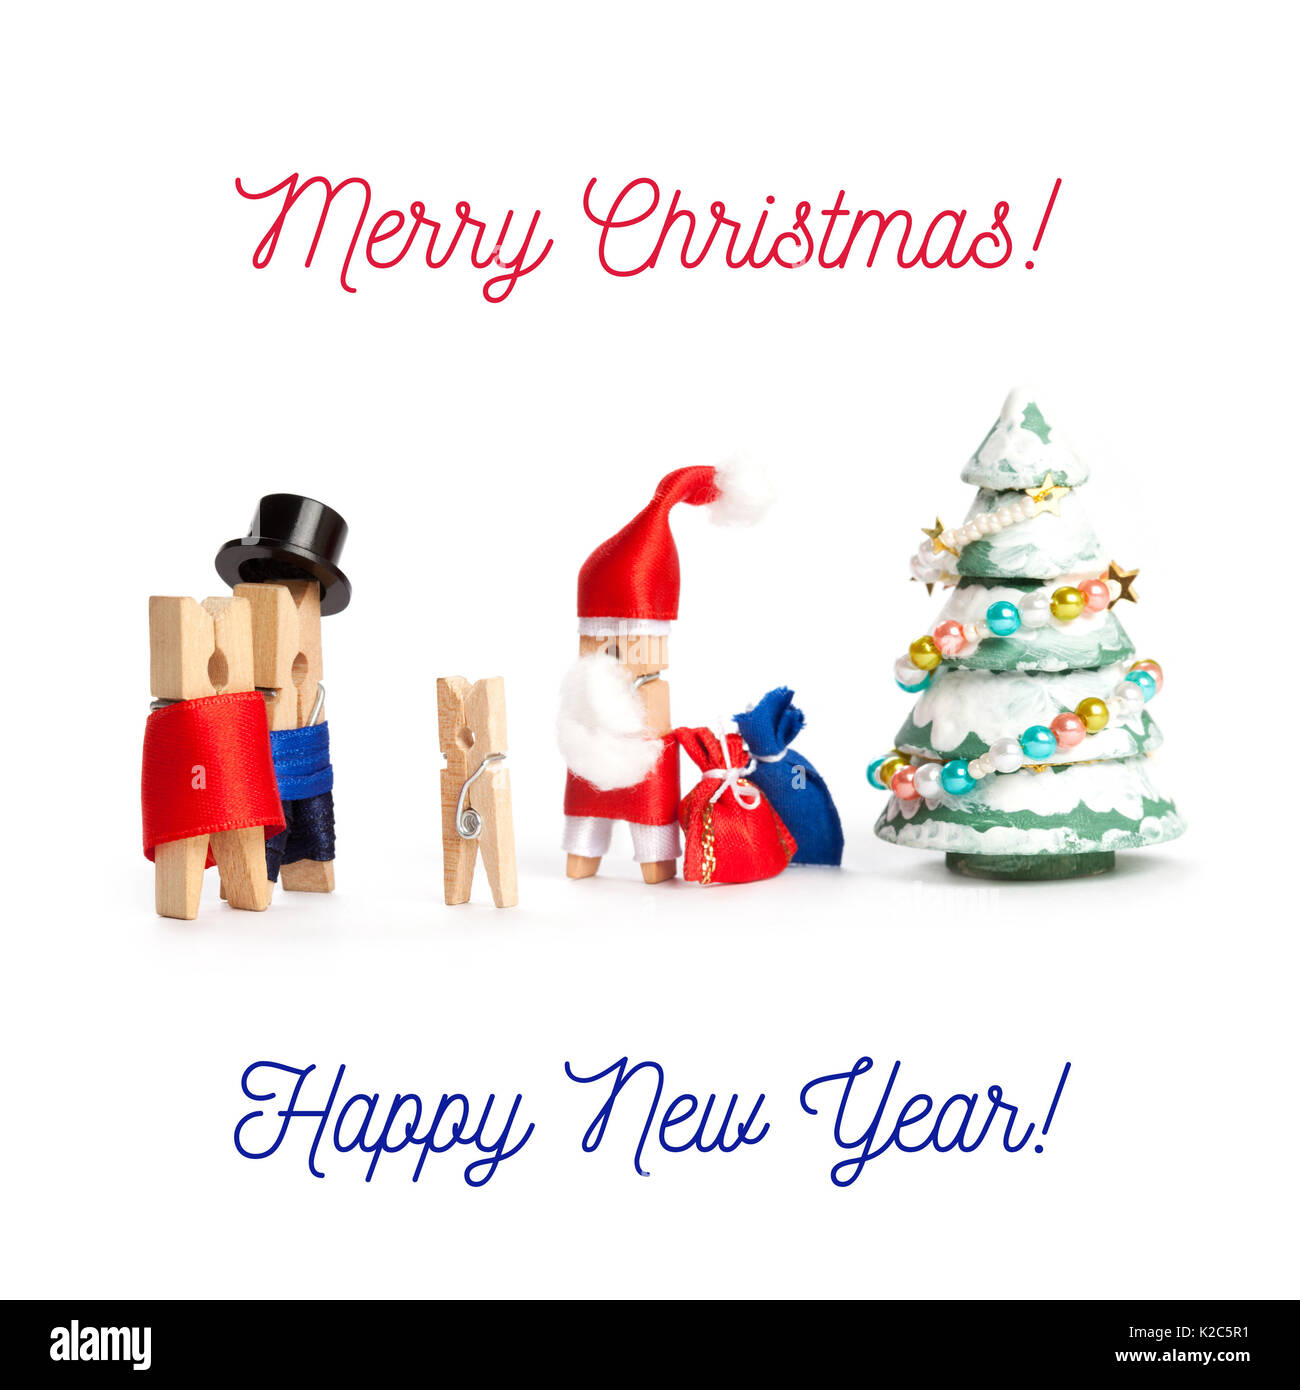 merry christmas and happy new year postcard template wooden clothespin santa claus man woman and child waiting xmas gifts spruce tree white background